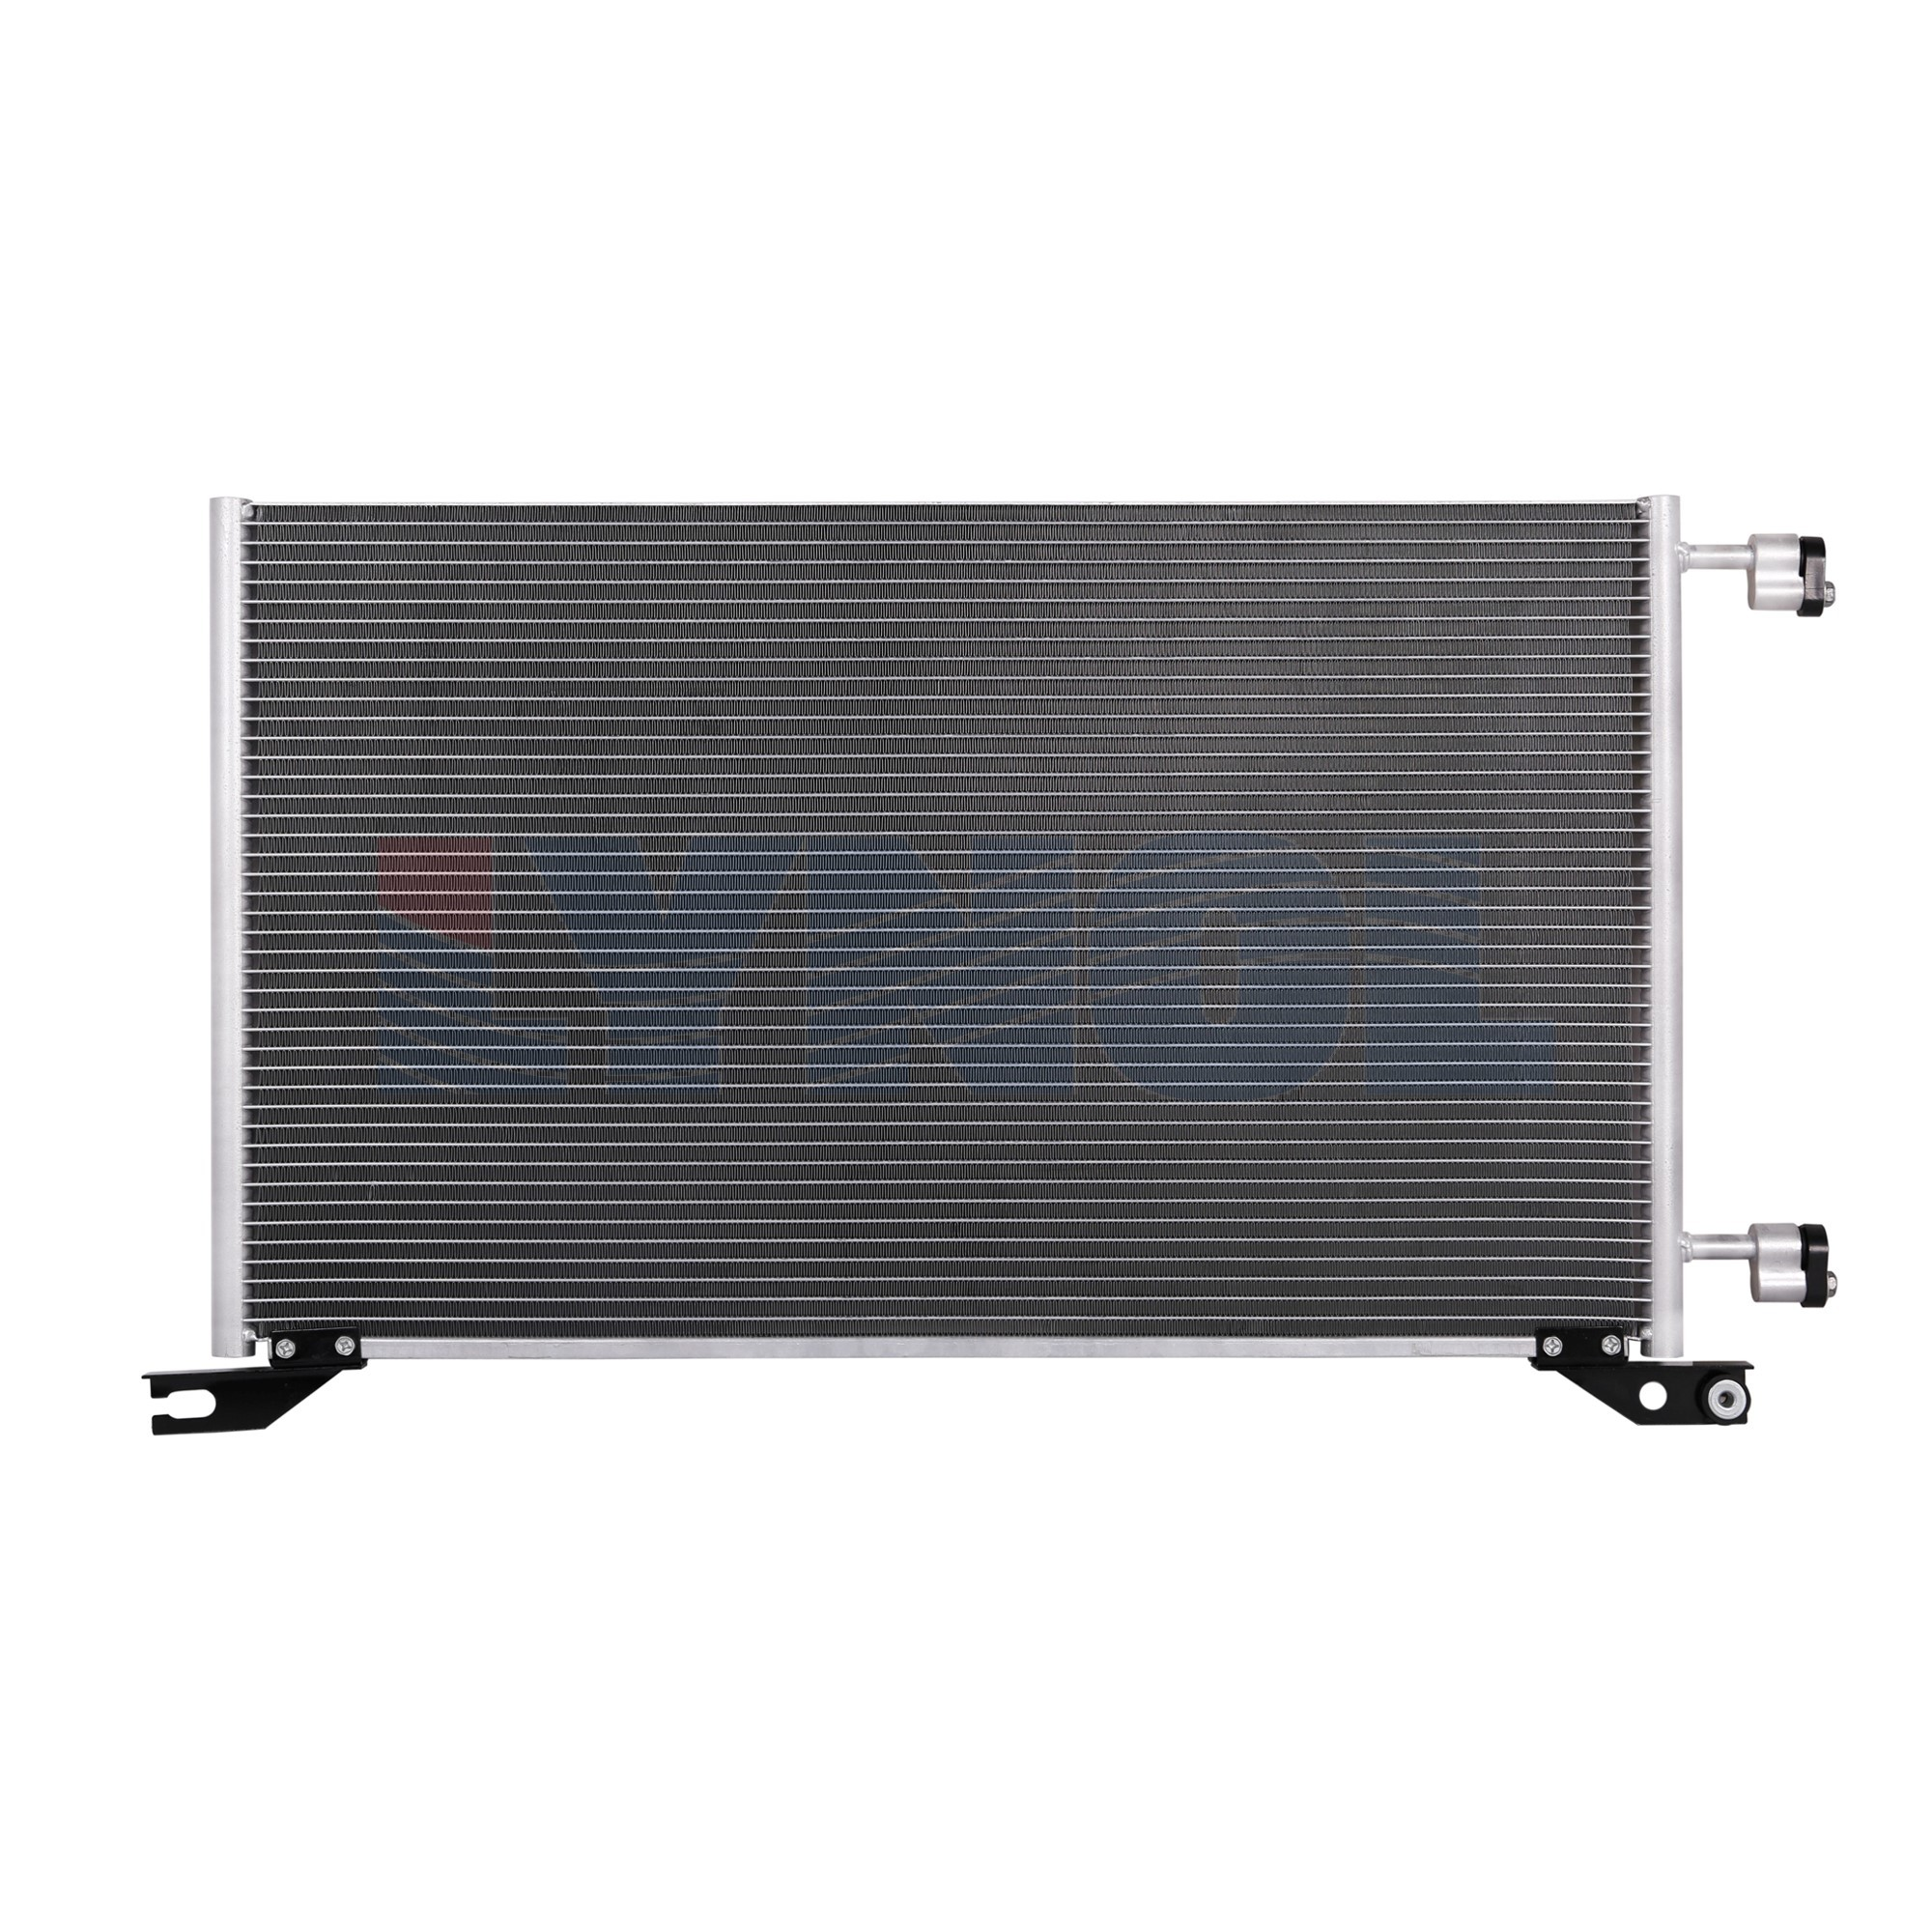 AC4953 - AC Condensers  - 99-15 Chevrolet / GMC /  Cadillac /  Hummer full size truck / suv